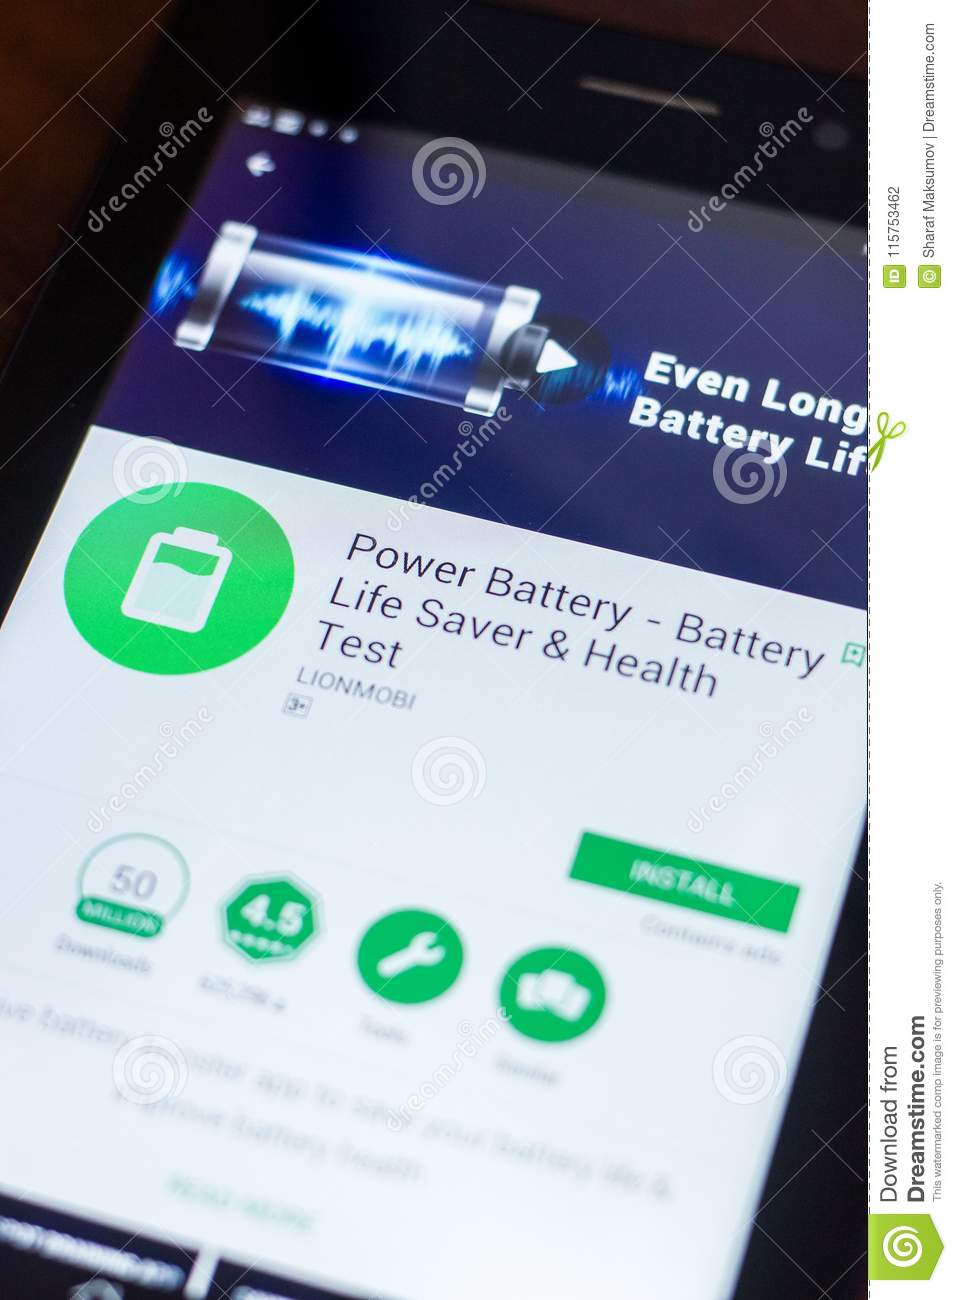 Ryazan, Russia - March 21, 2018 - Power Battery Mobile App On The